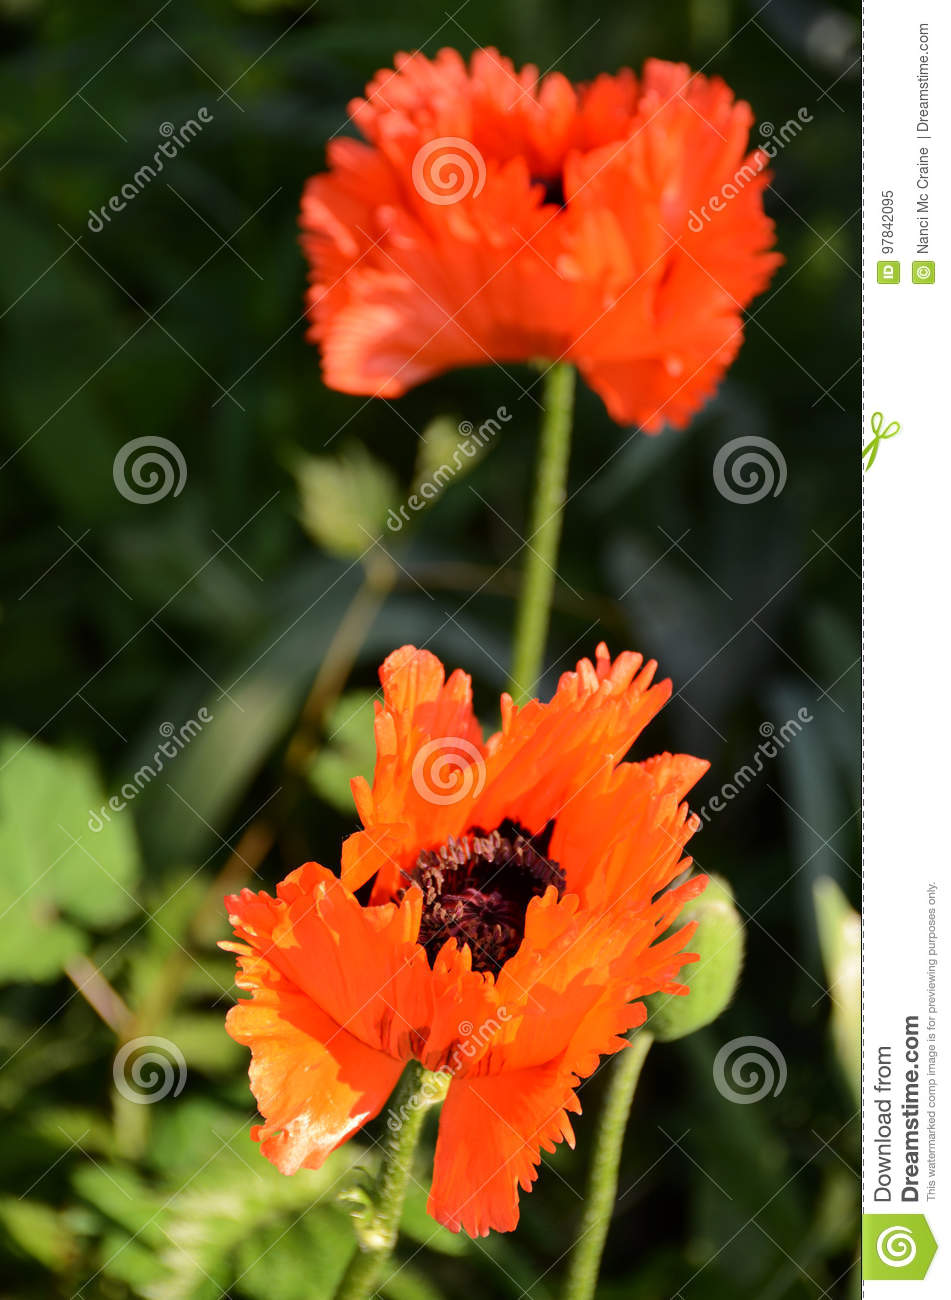 Life Of A Poppy Flower Turkenlouis Red Highly Fringed Stock Image